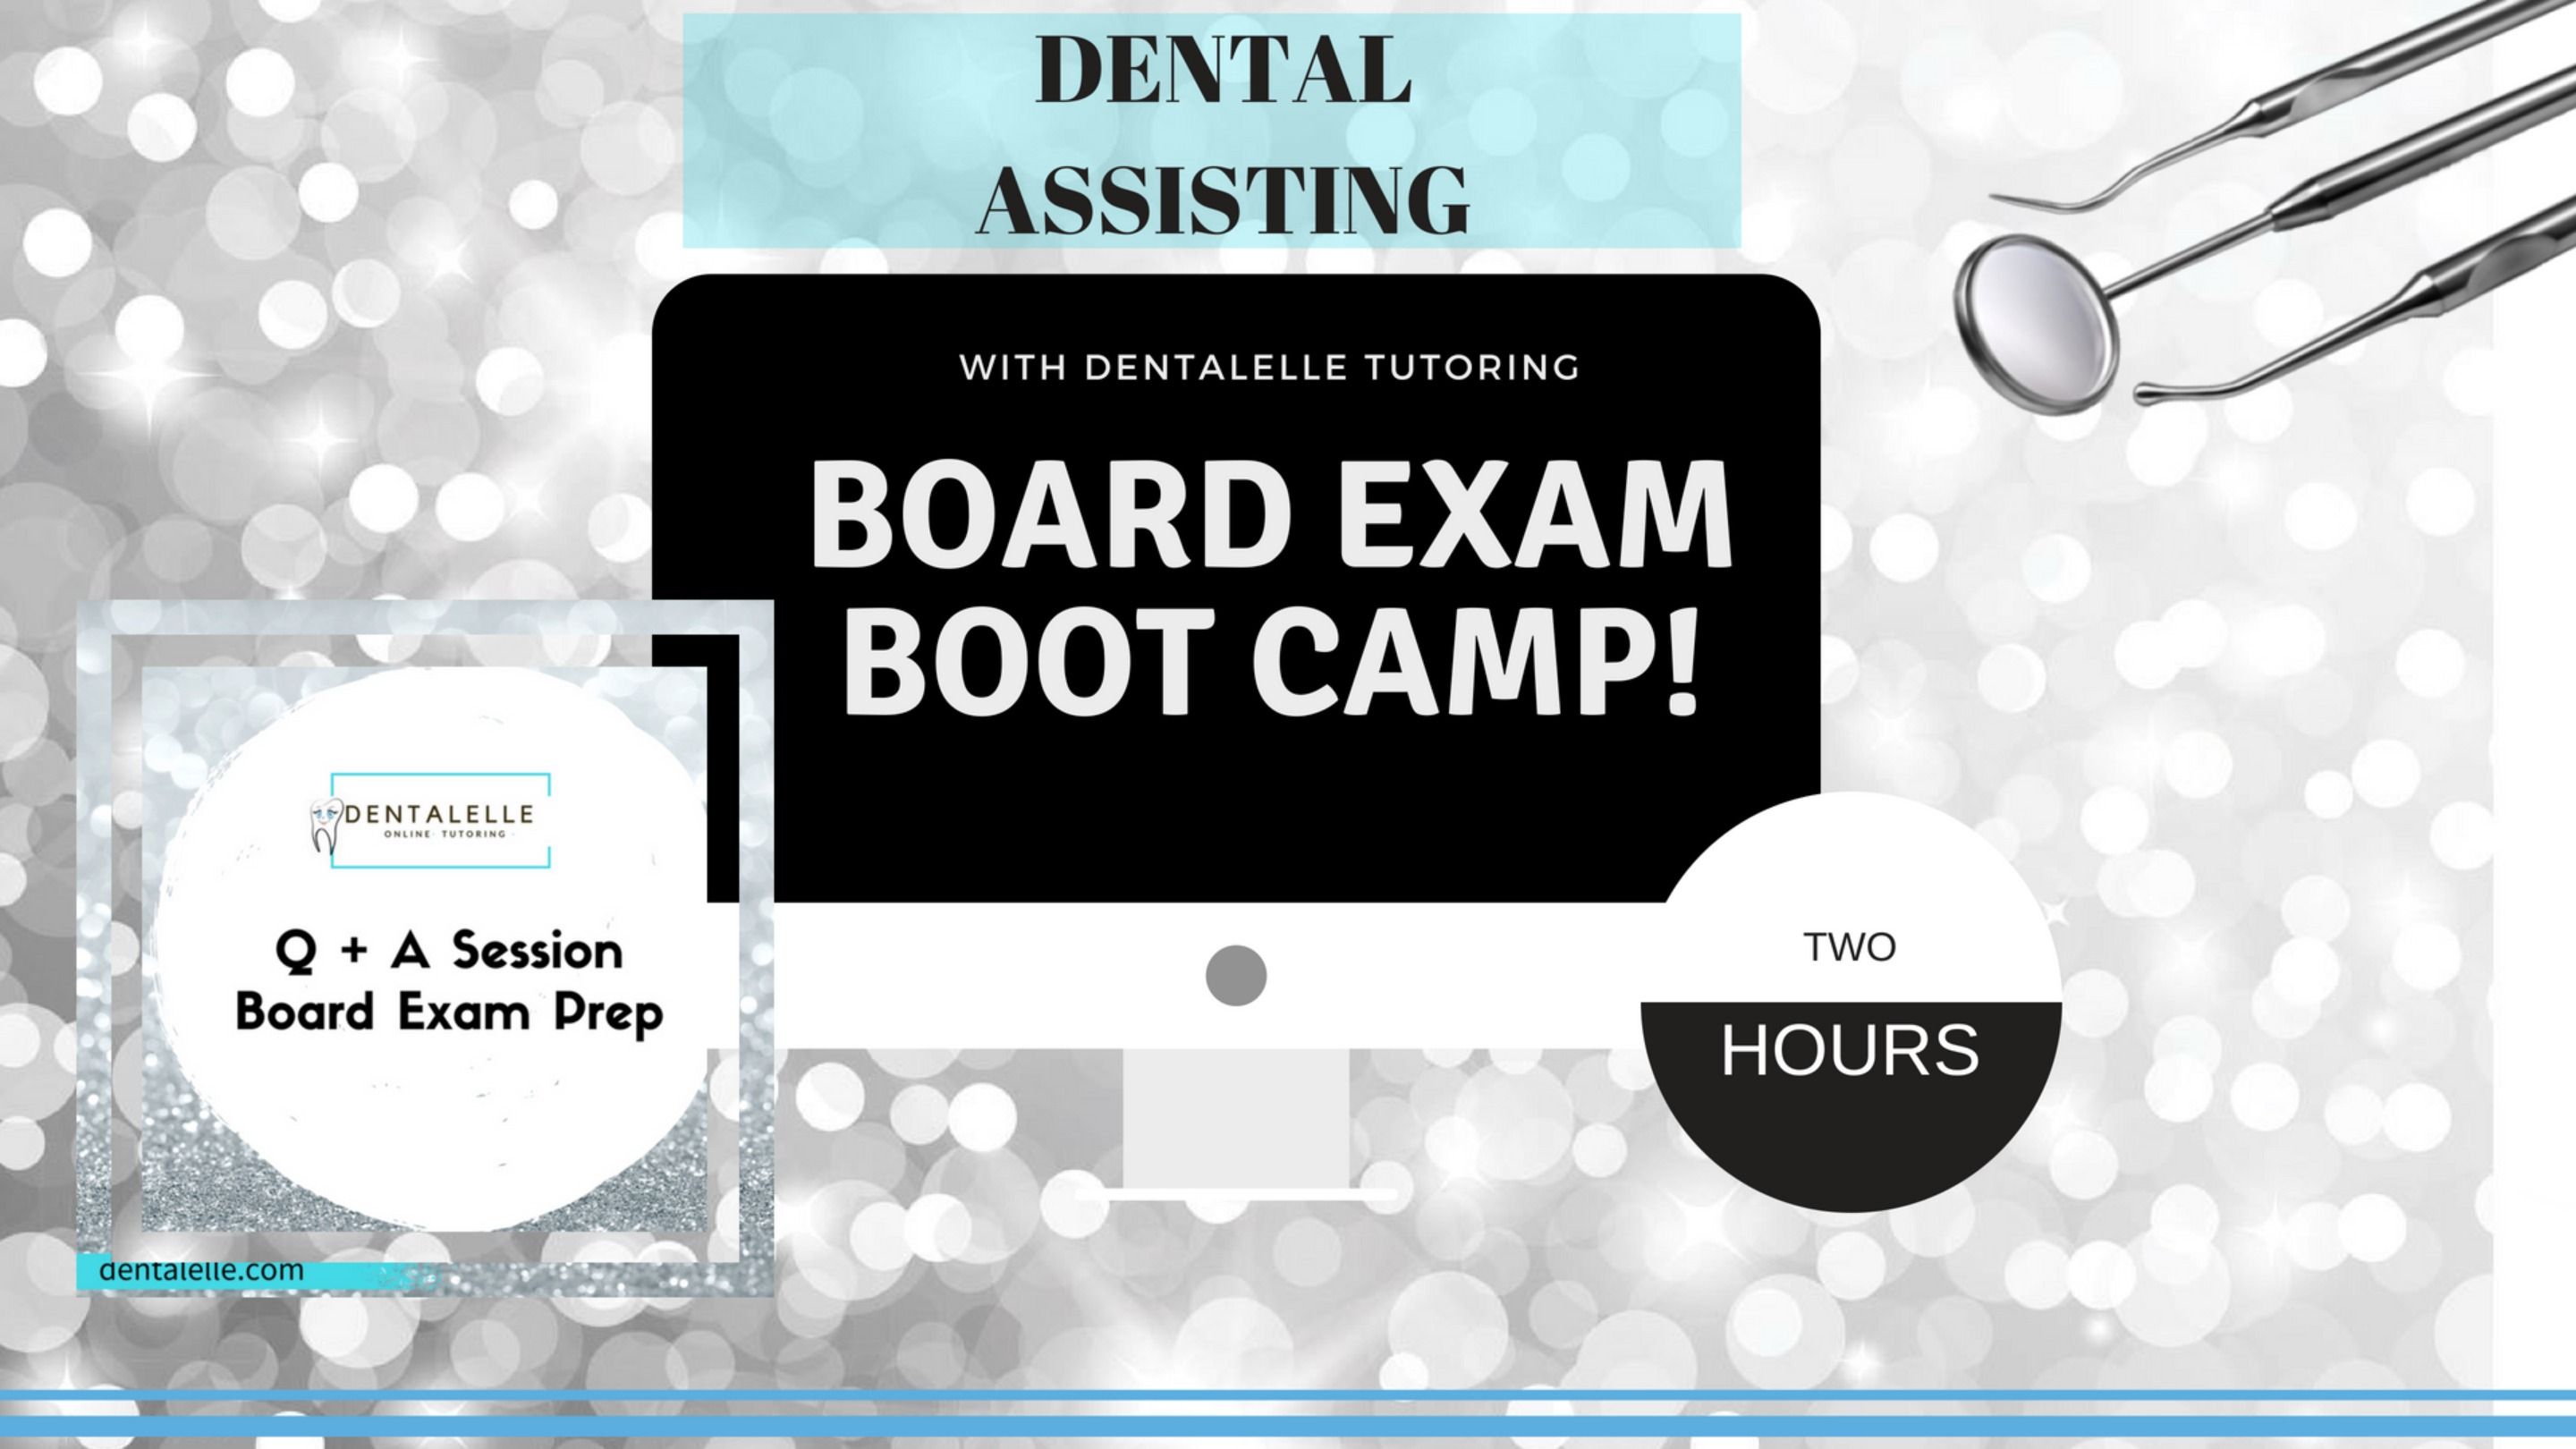 Dental Assisting Board Exam Boot Camp - Two Hours LIVE!